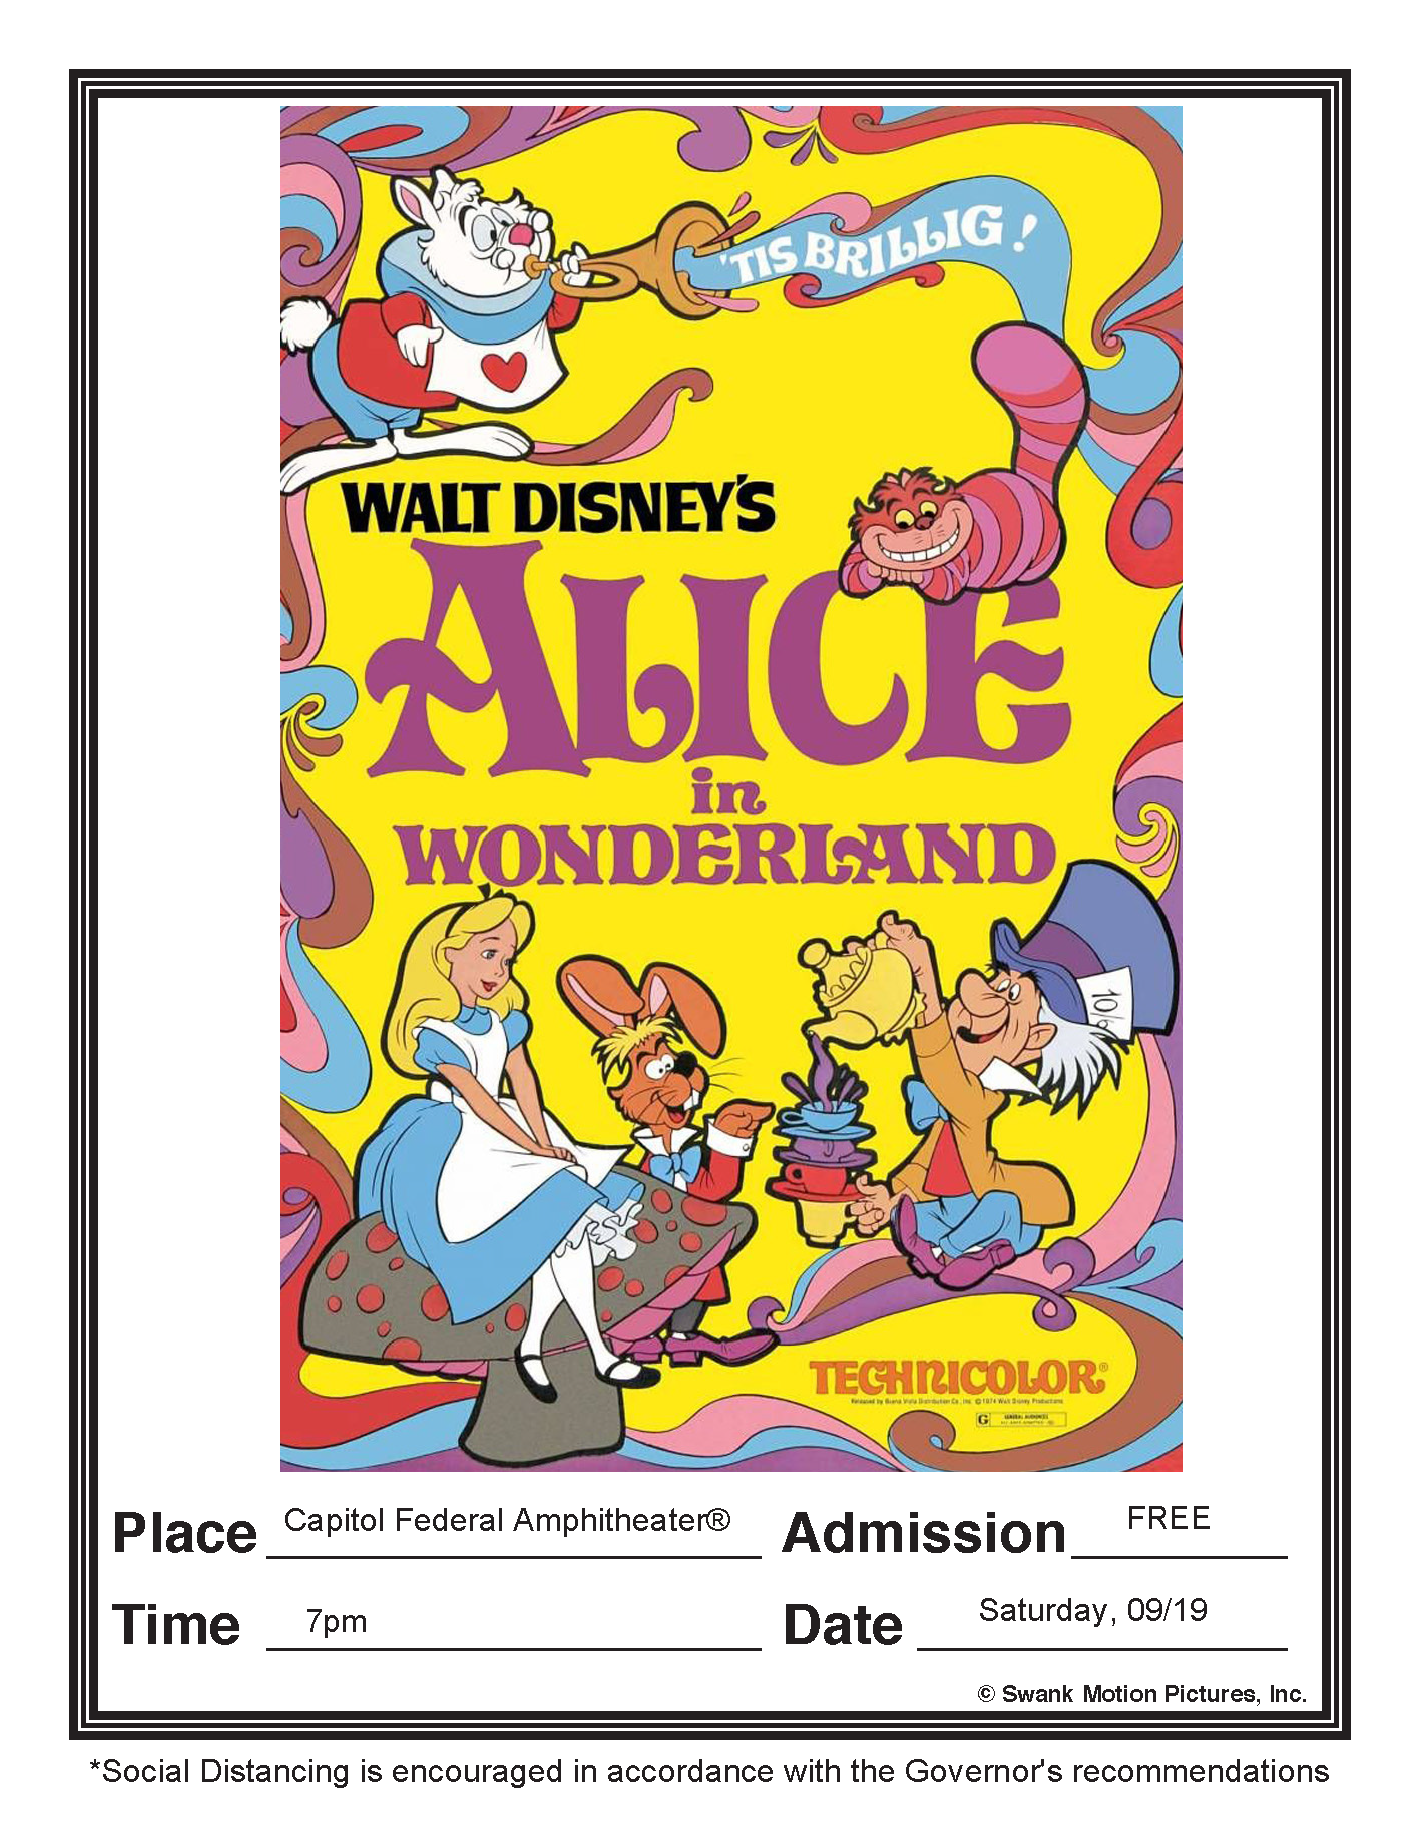 Alice in Wonderland - 09/19/20 7pm